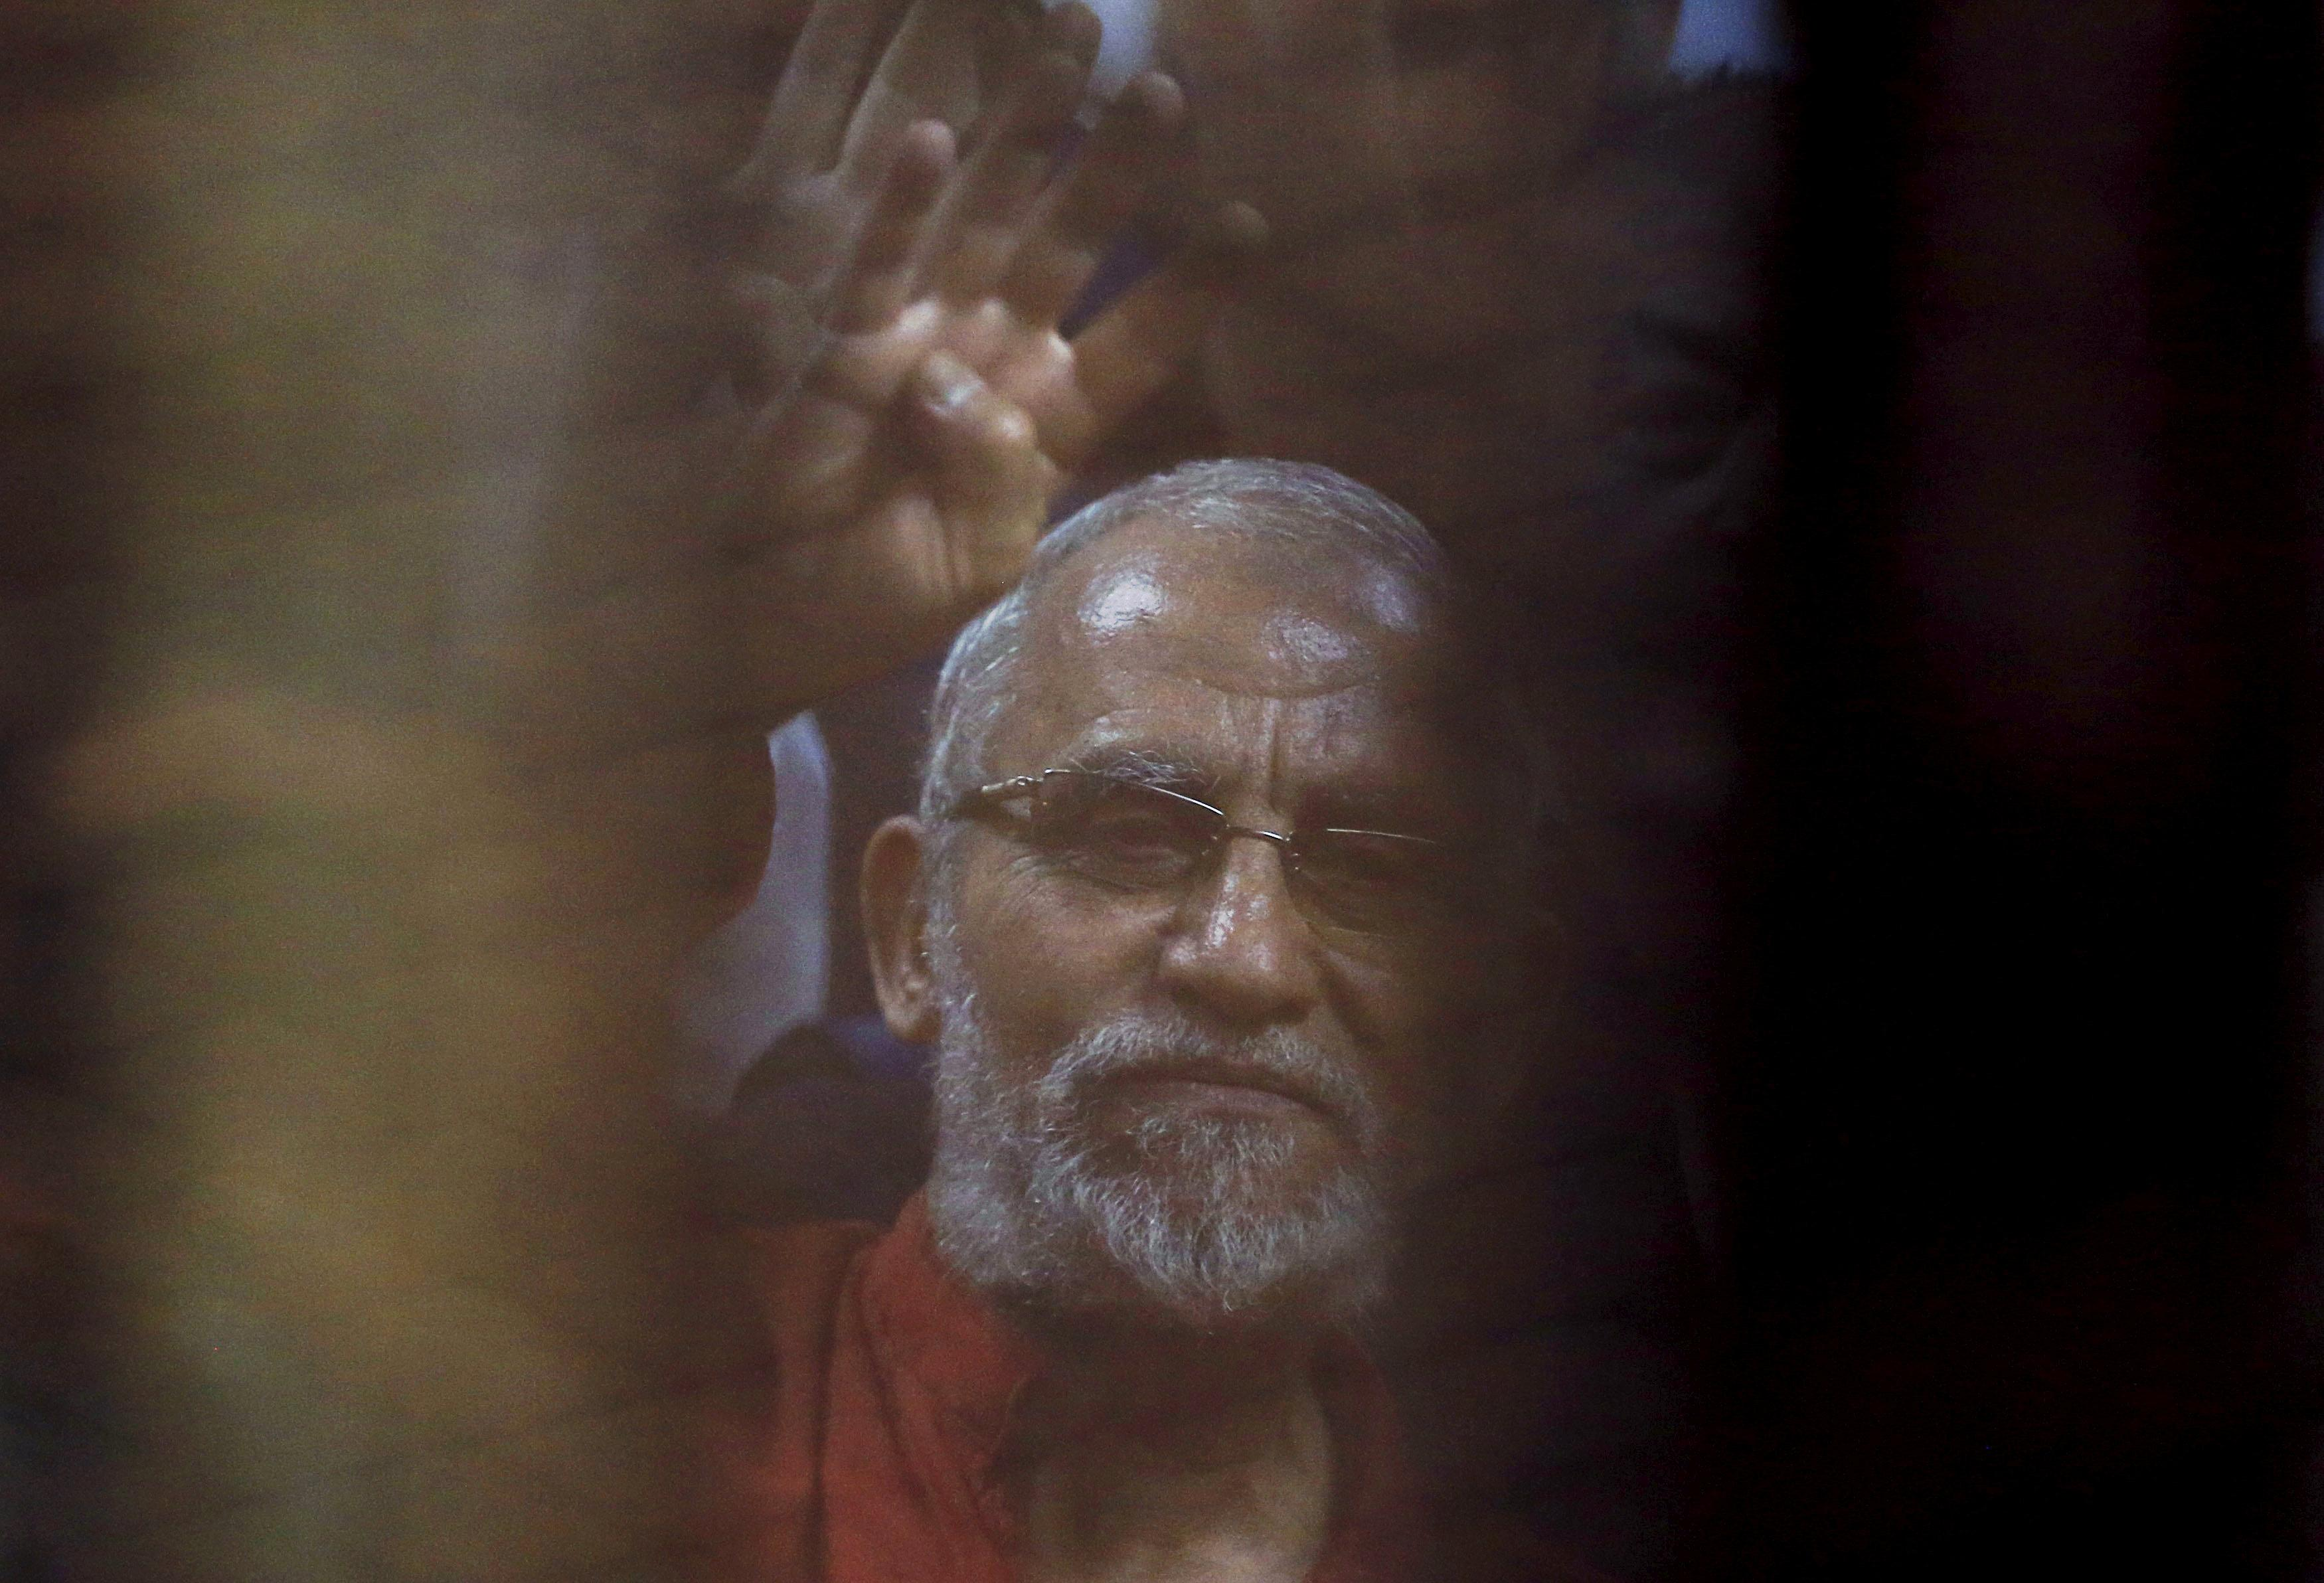 Muslim Brotherhood's Supreme Guide Mohamed Badie waves with the Rabaa sign, symbolizing support for the Muslim Brotherhood, with other brotherhood members at a court in the outskirts of Cairo, Egypt, June 2, 2015.  Amr Abdallah Dalsh